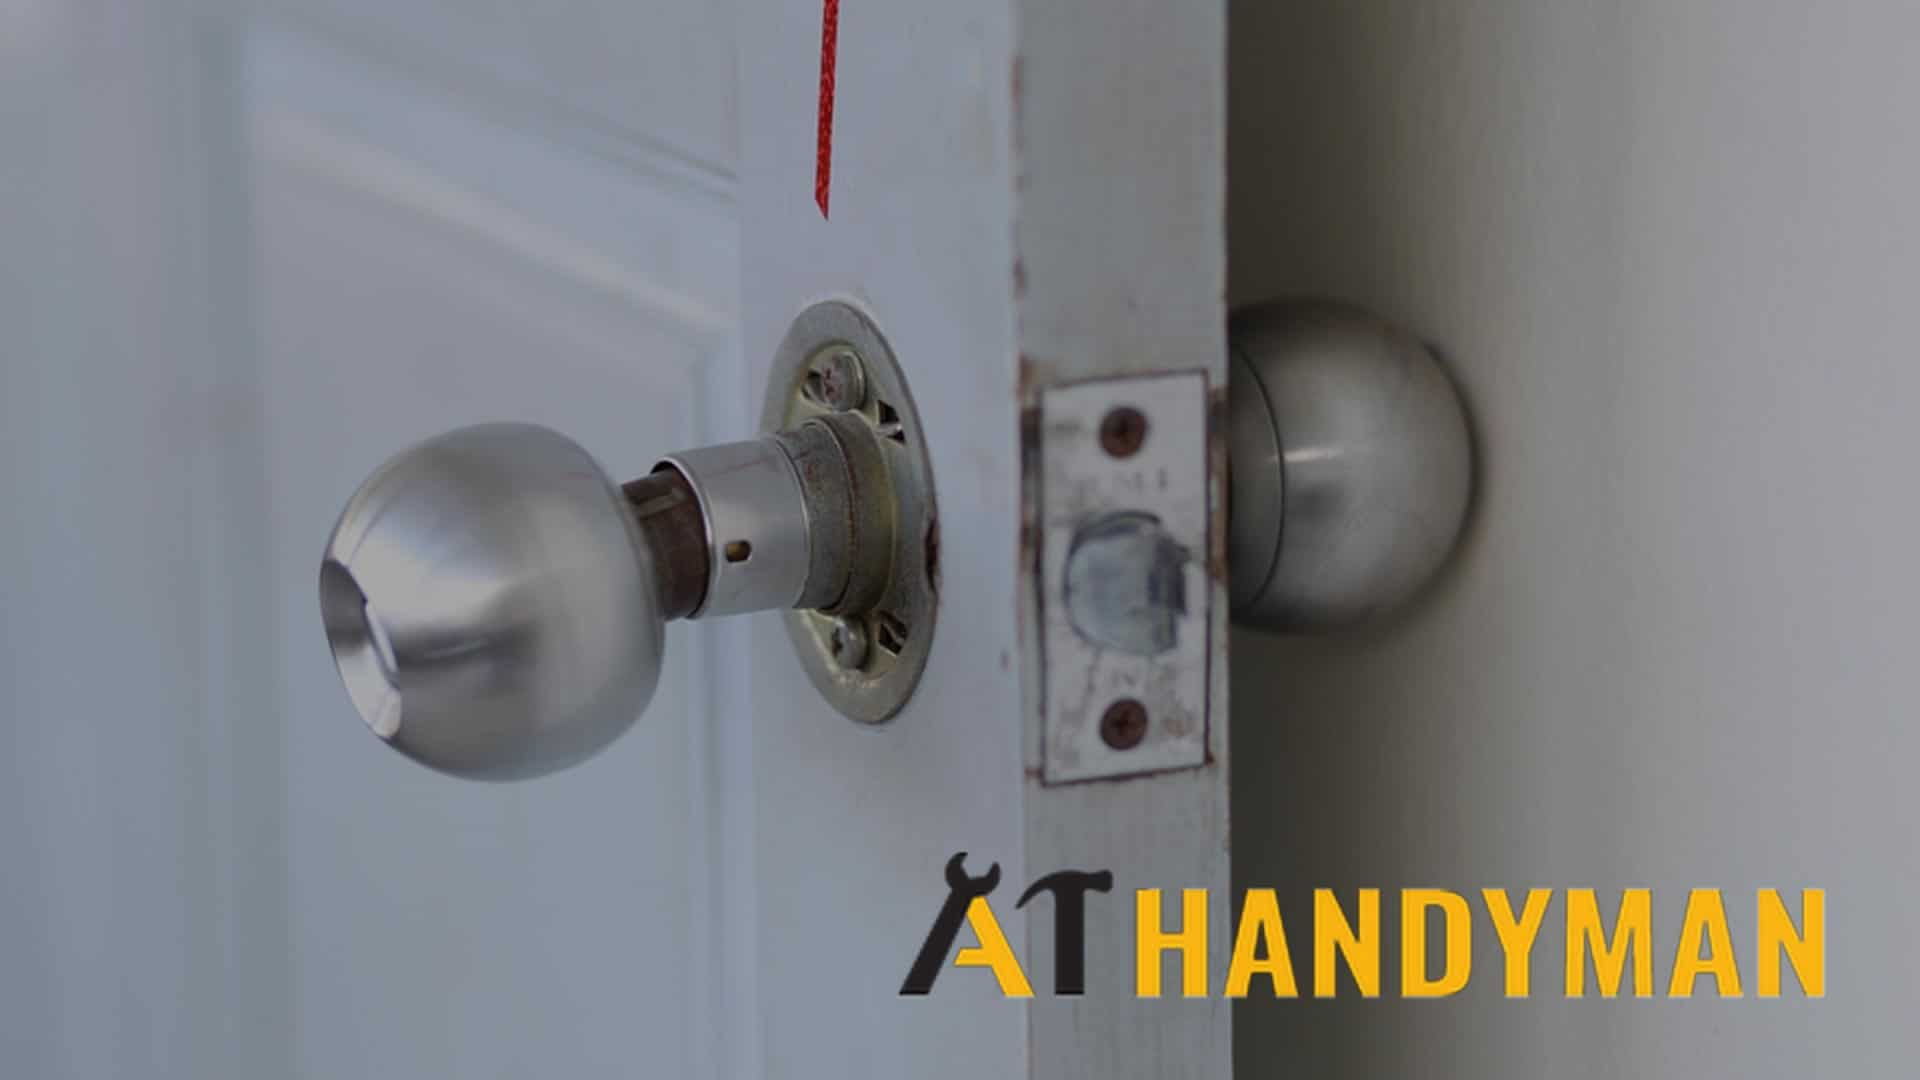 loose-door-knob-a1-handyman-singapore